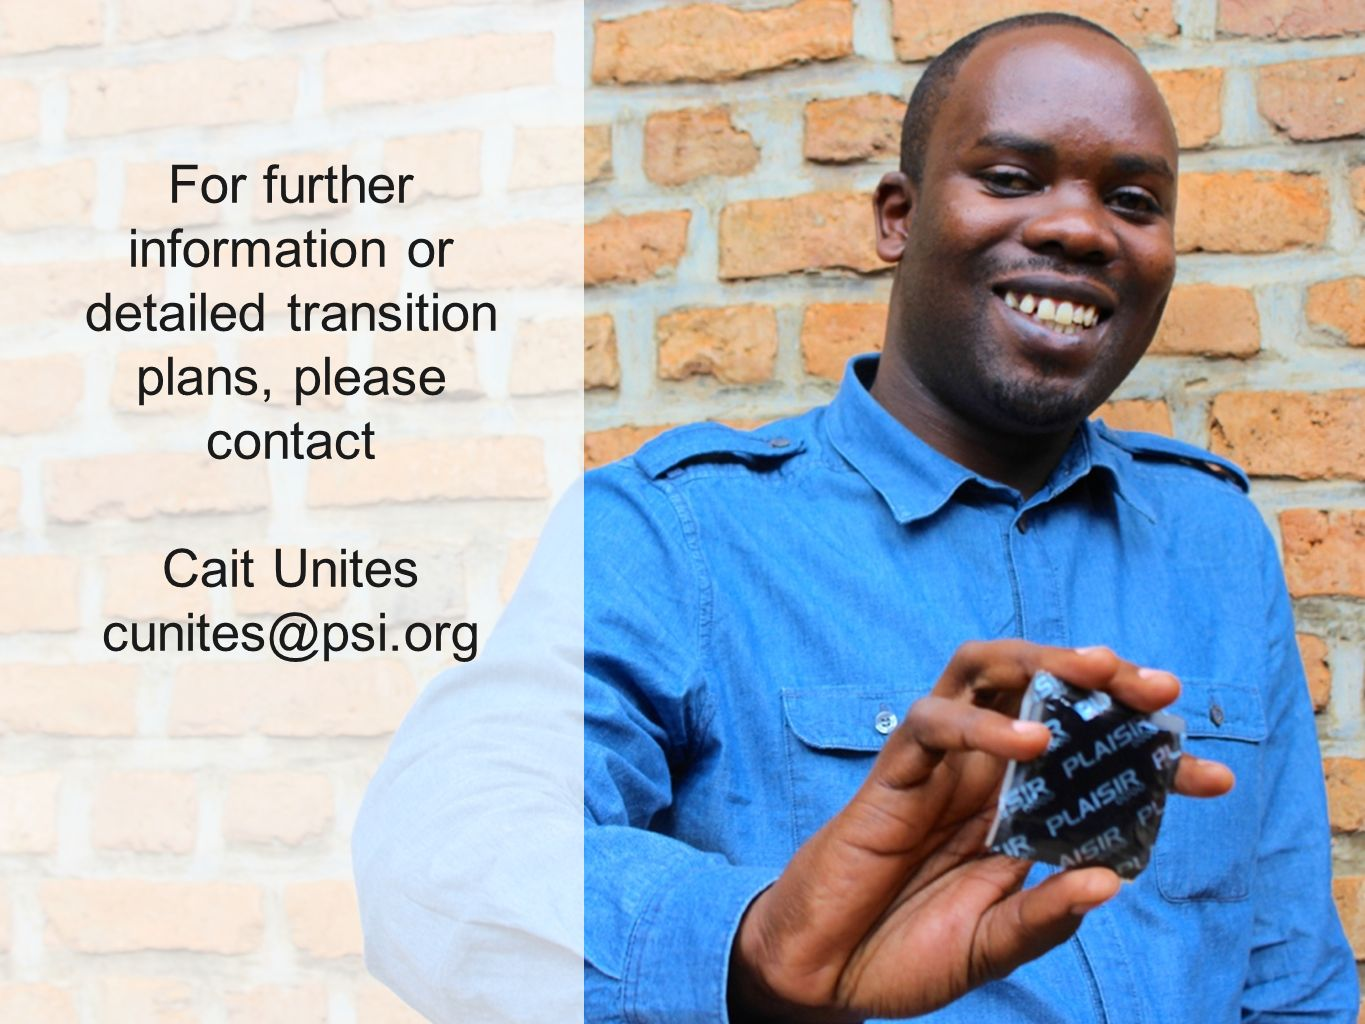 For further information or detailed transition plans, please contact Cait Unites